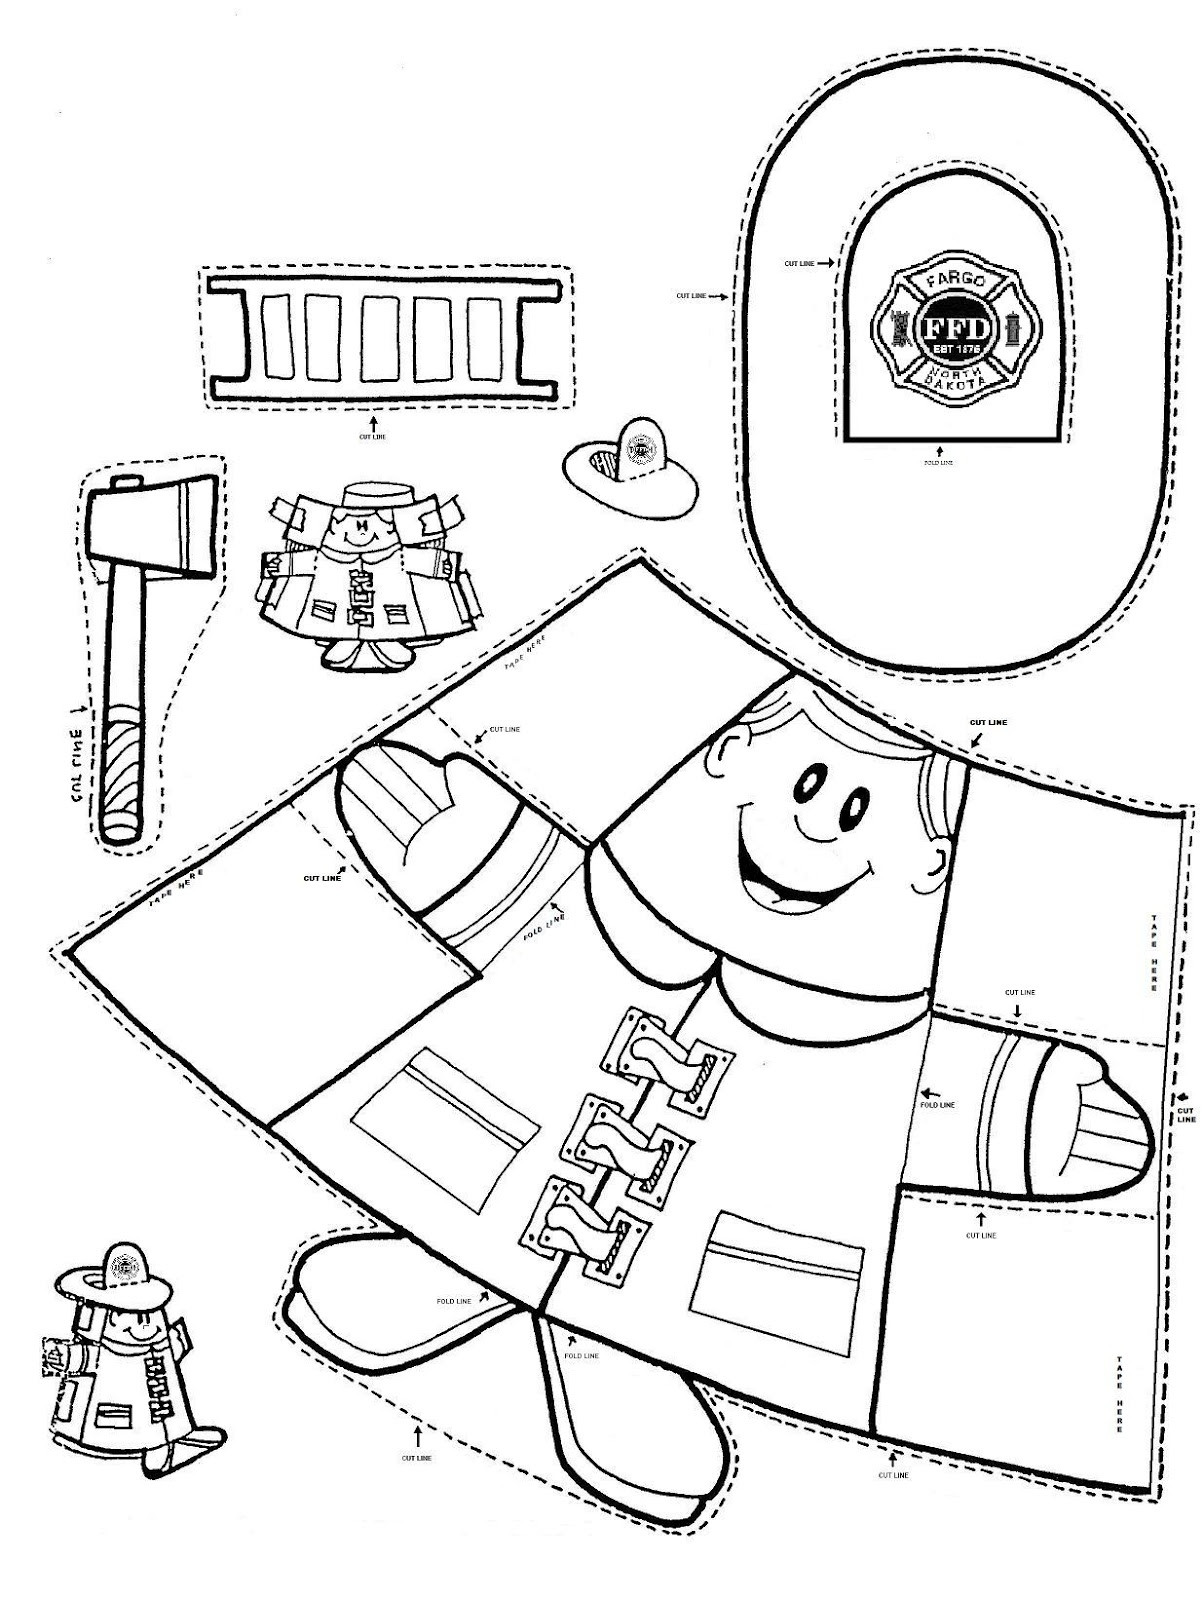 Safety Worksheets Printable Work Safety Worksheets Printable and Activities for Road